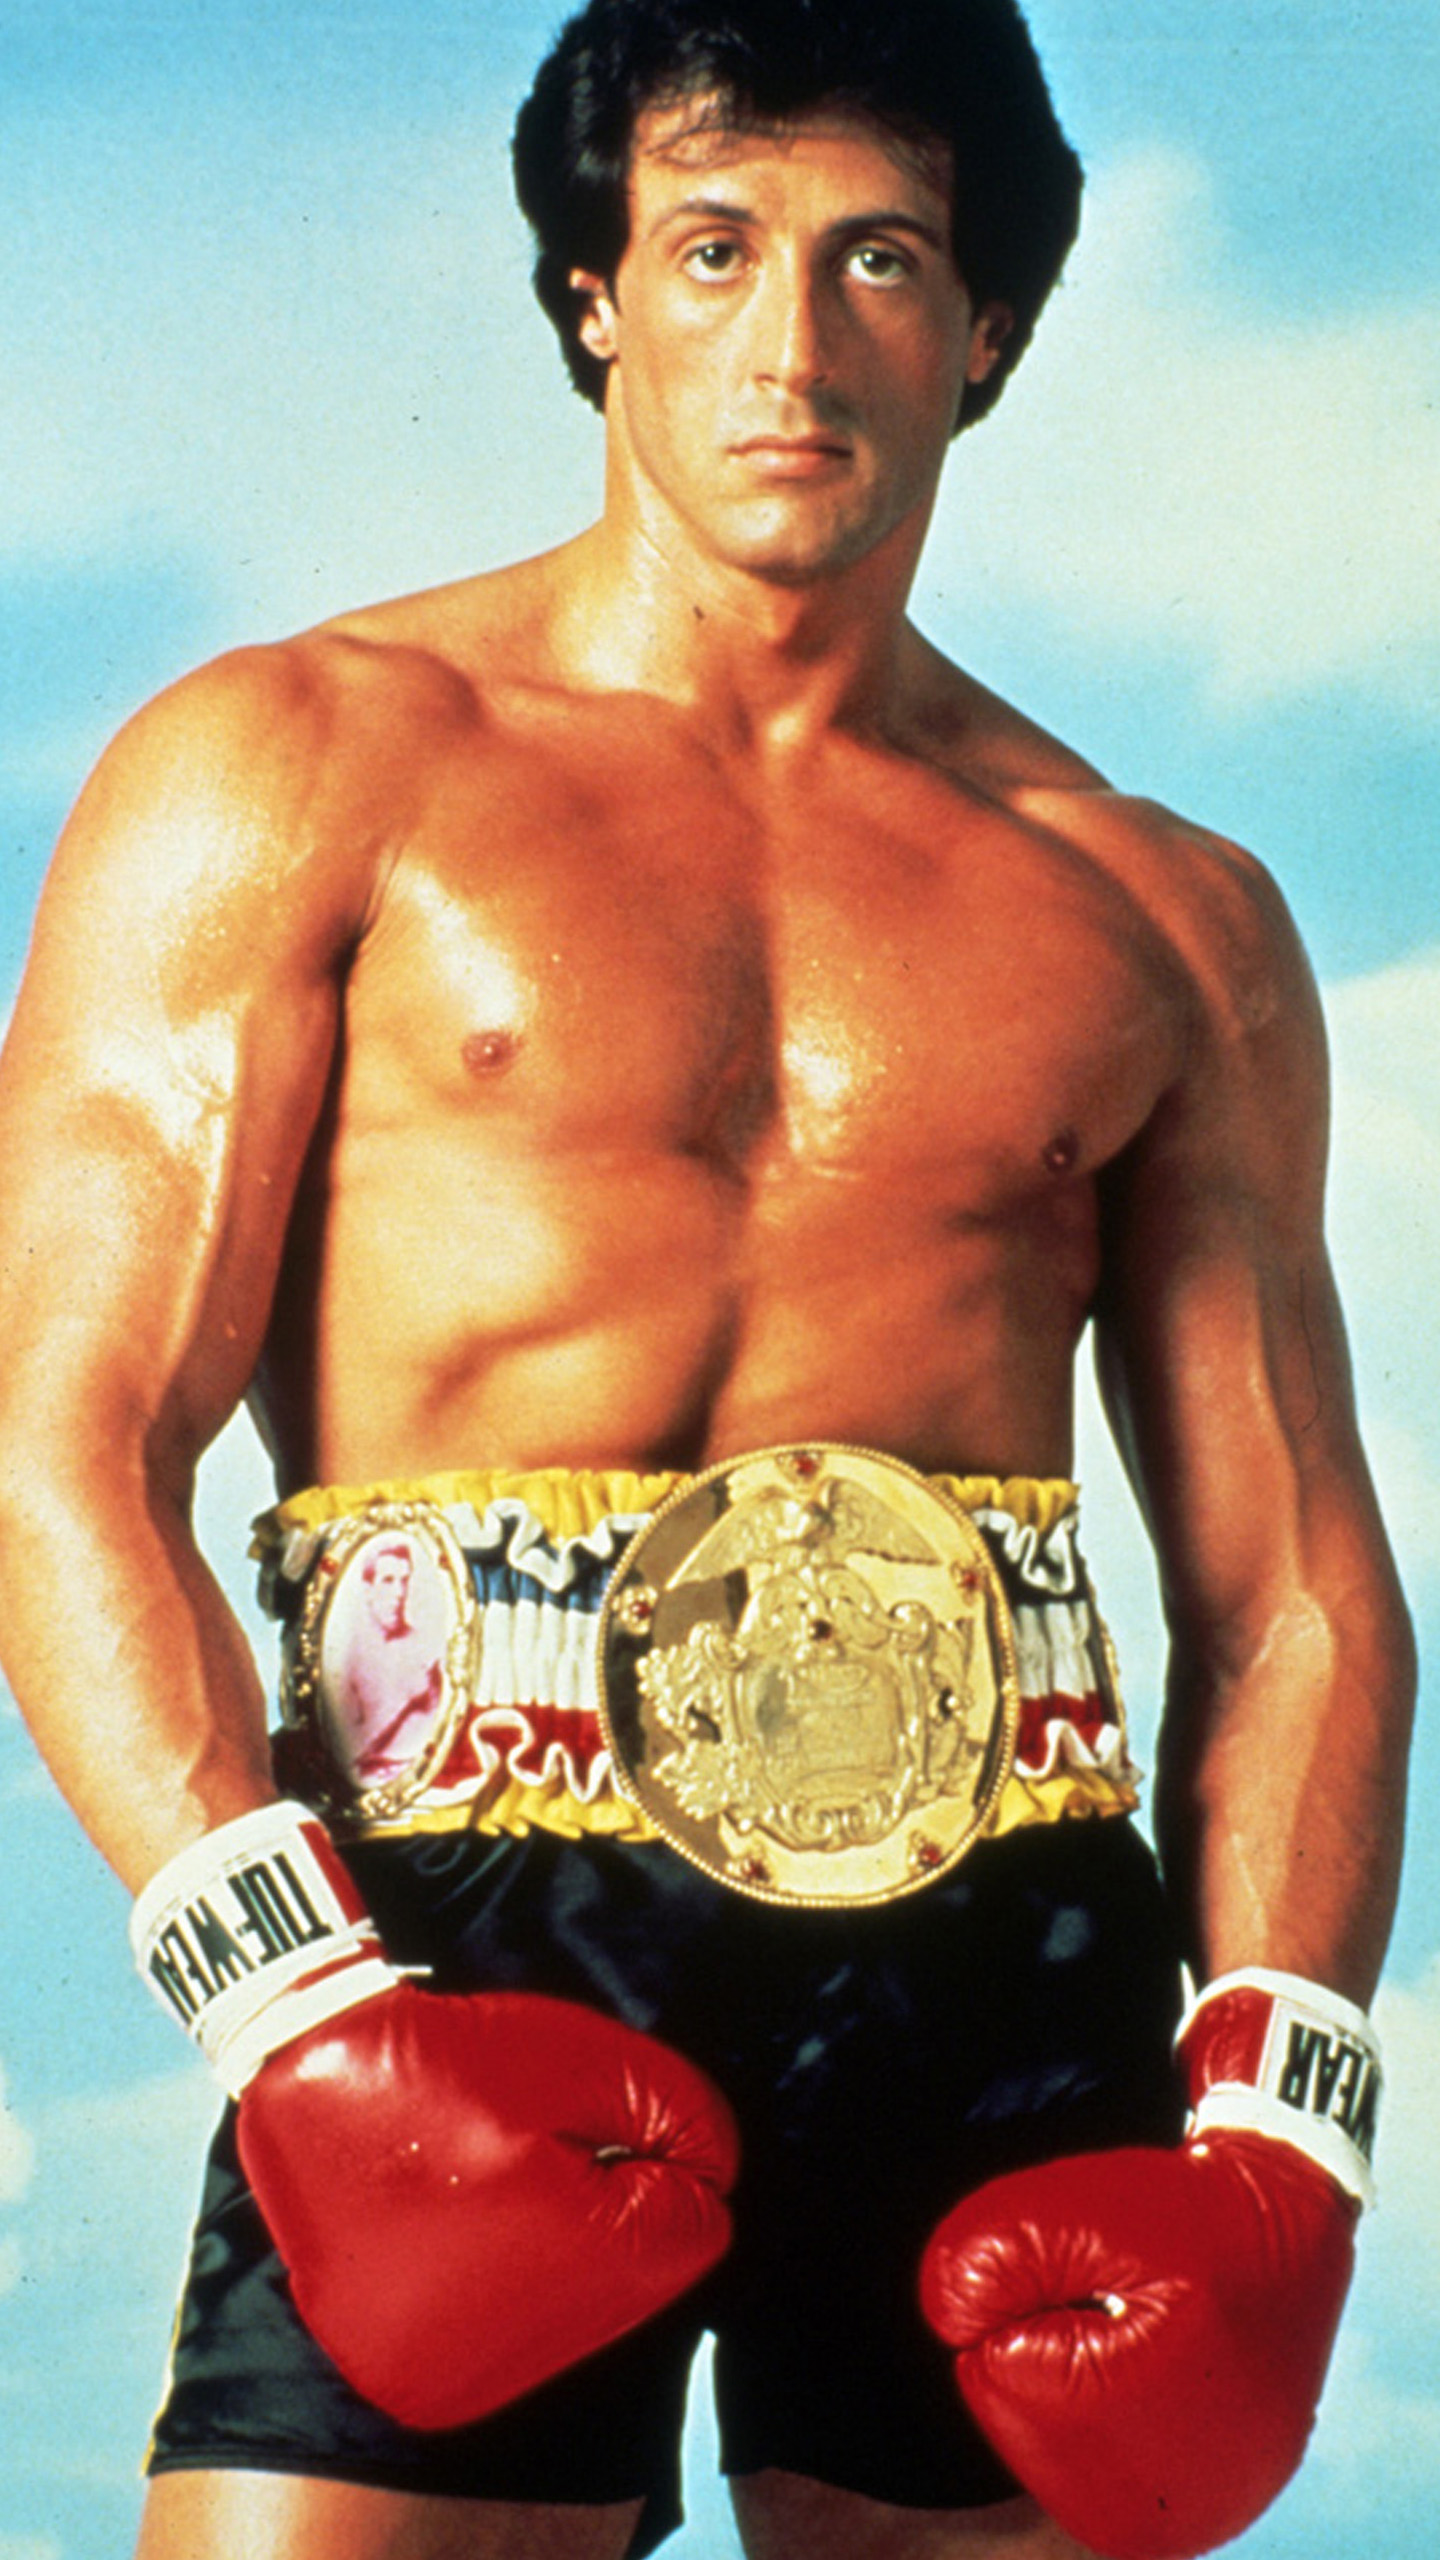 29 Rocky Balboa Images for Laptop   GsFDcY Graphics 1440x2560